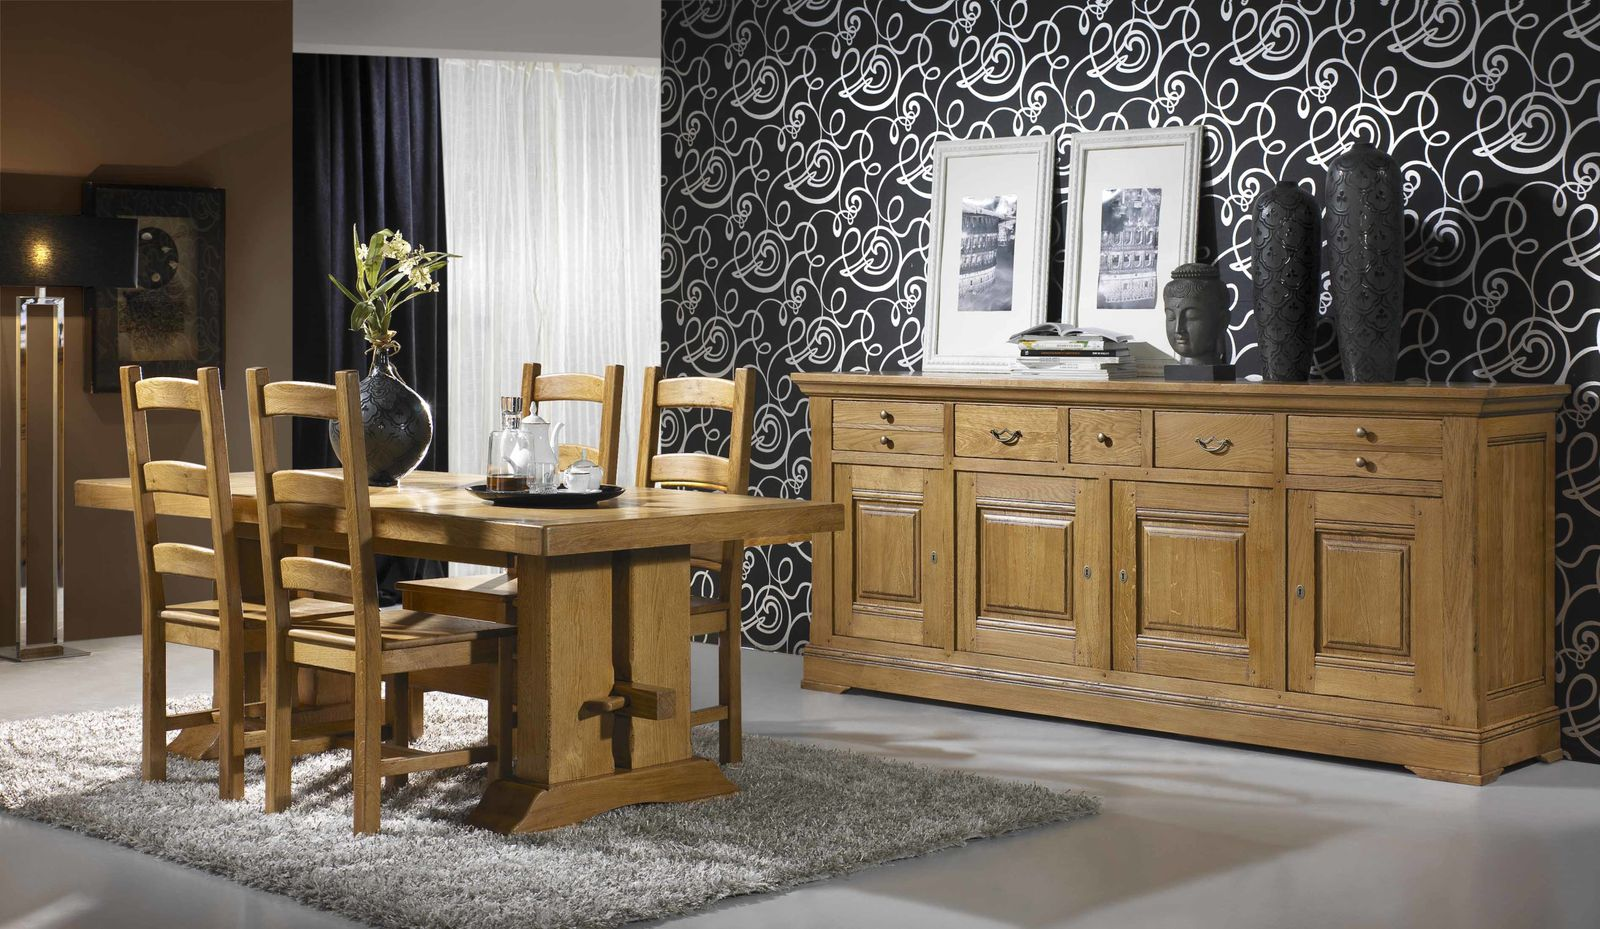 meubles rustiques en ch ne massif. Black Bedroom Furniture Sets. Home Design Ideas